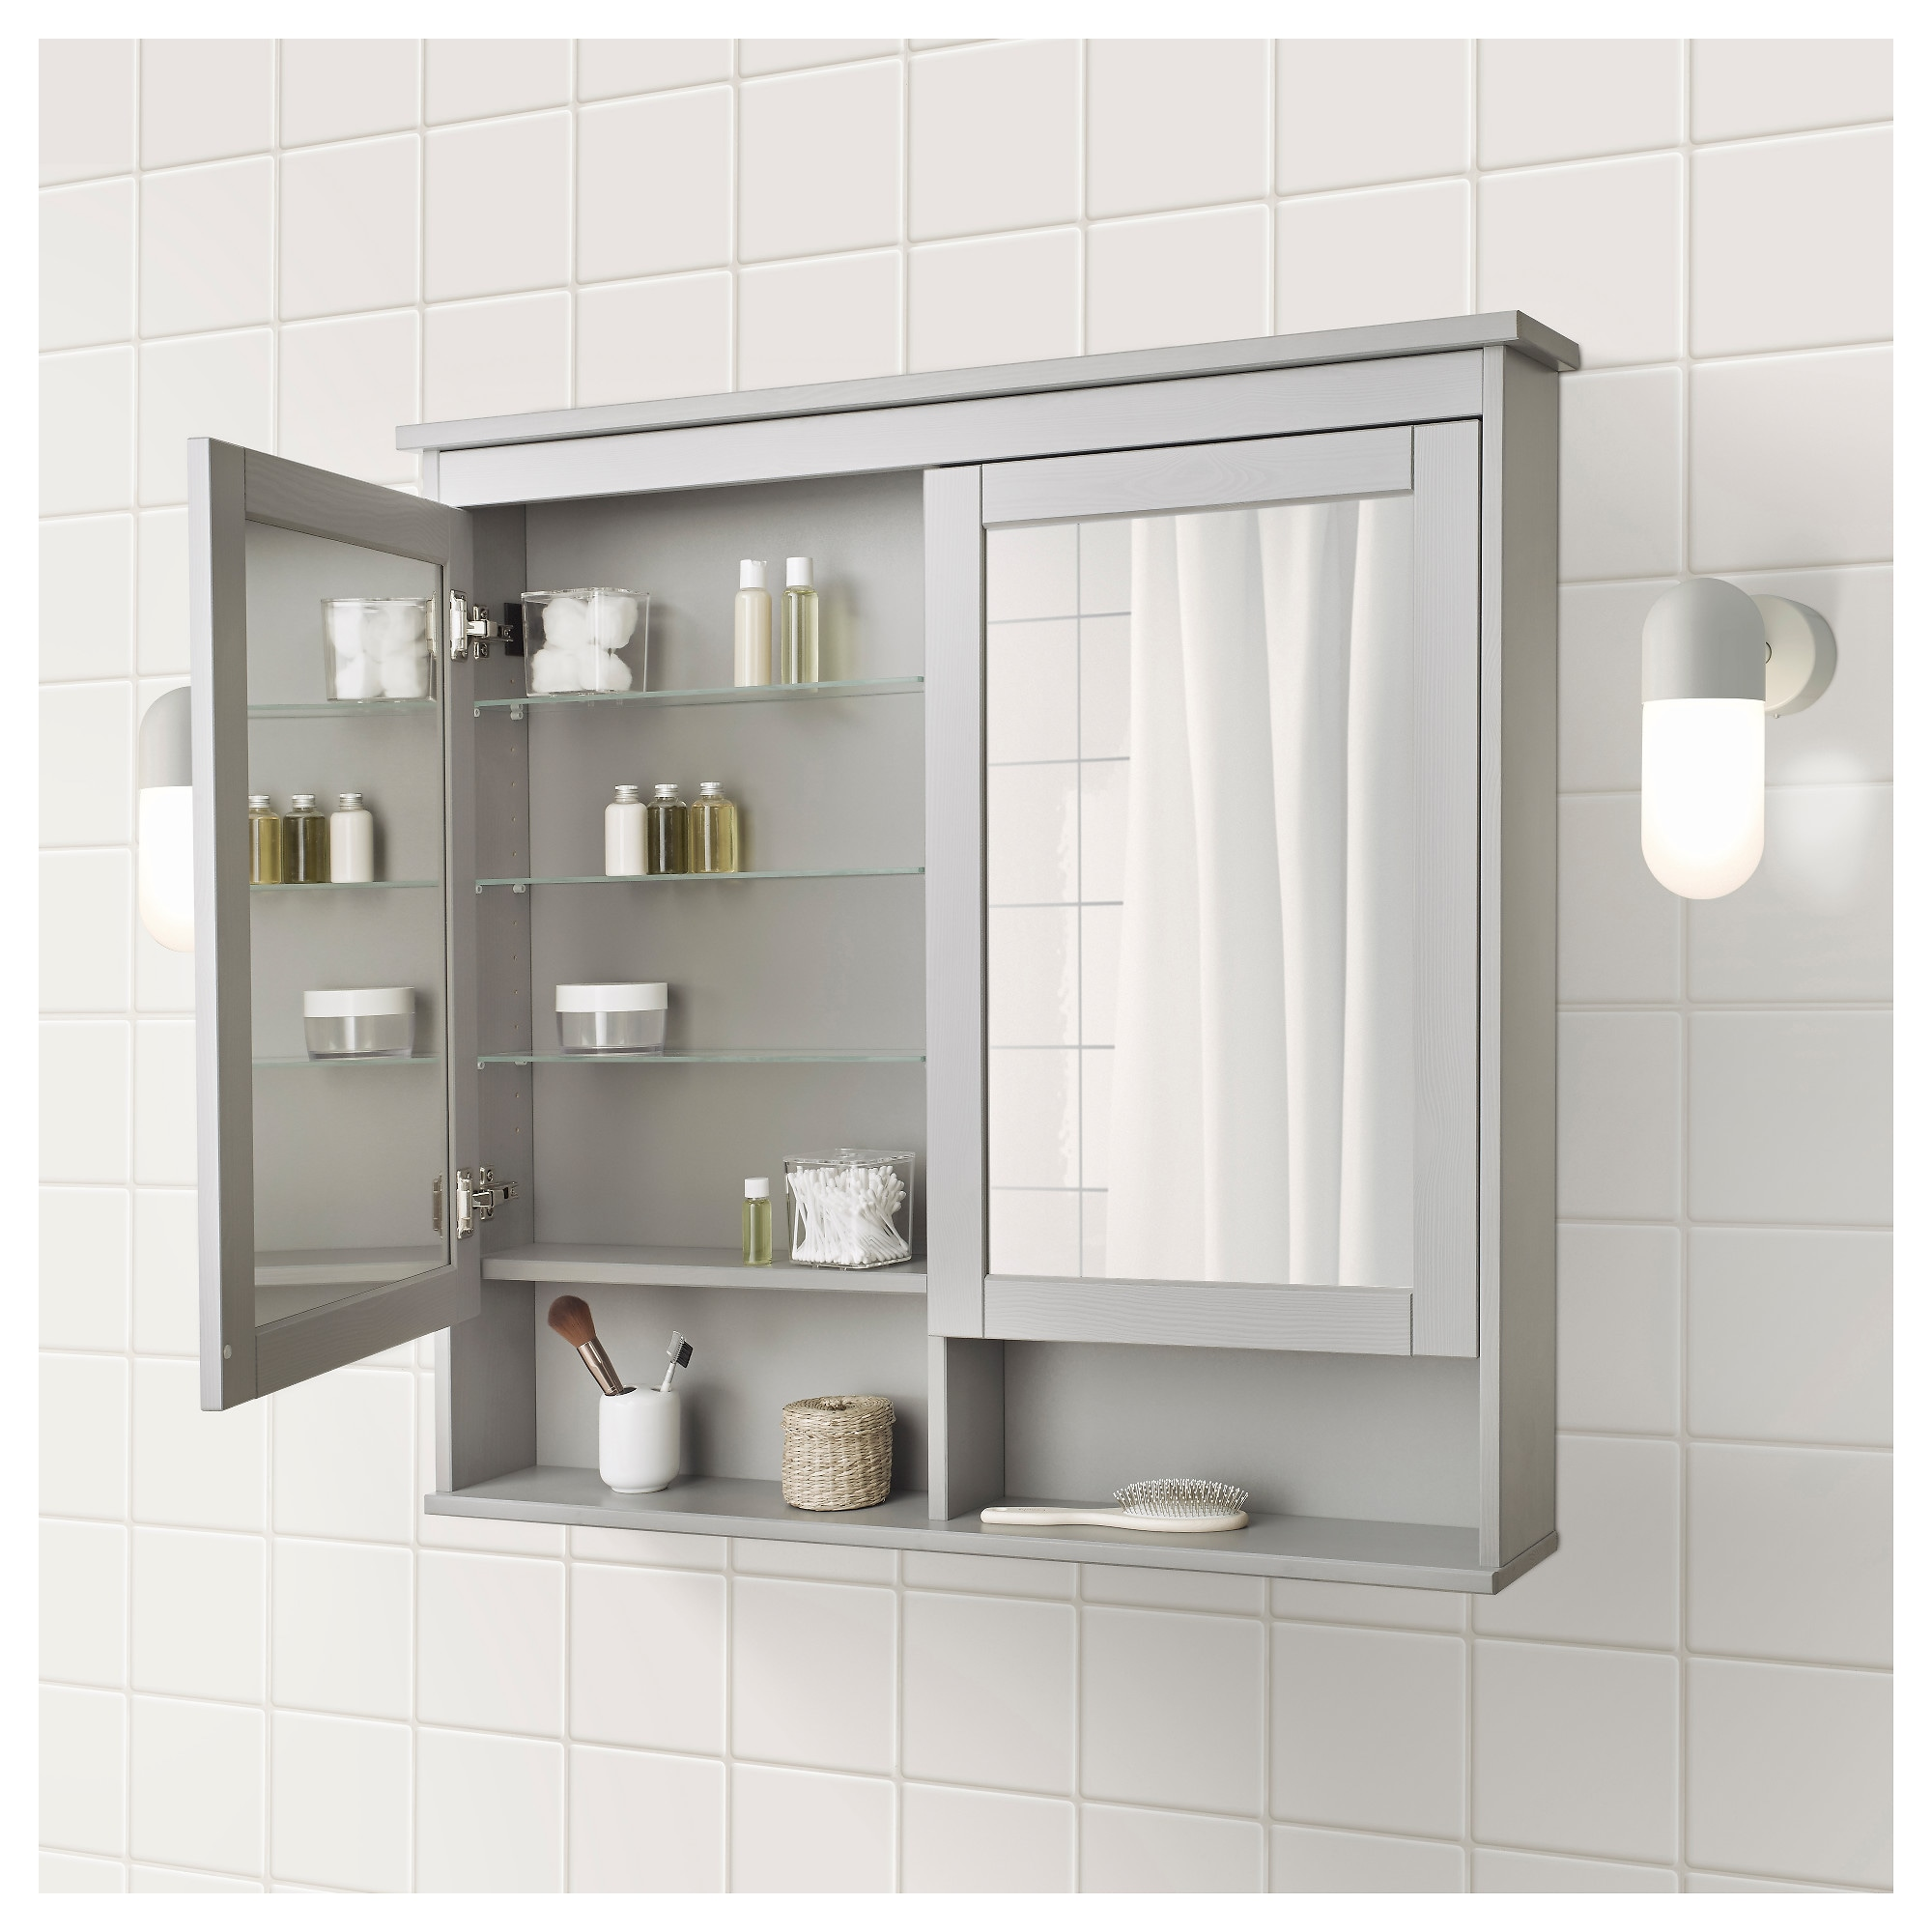 hemnes mirror cabinet with 2 doors - white, 32 5/8x6 1/4x38 5/8